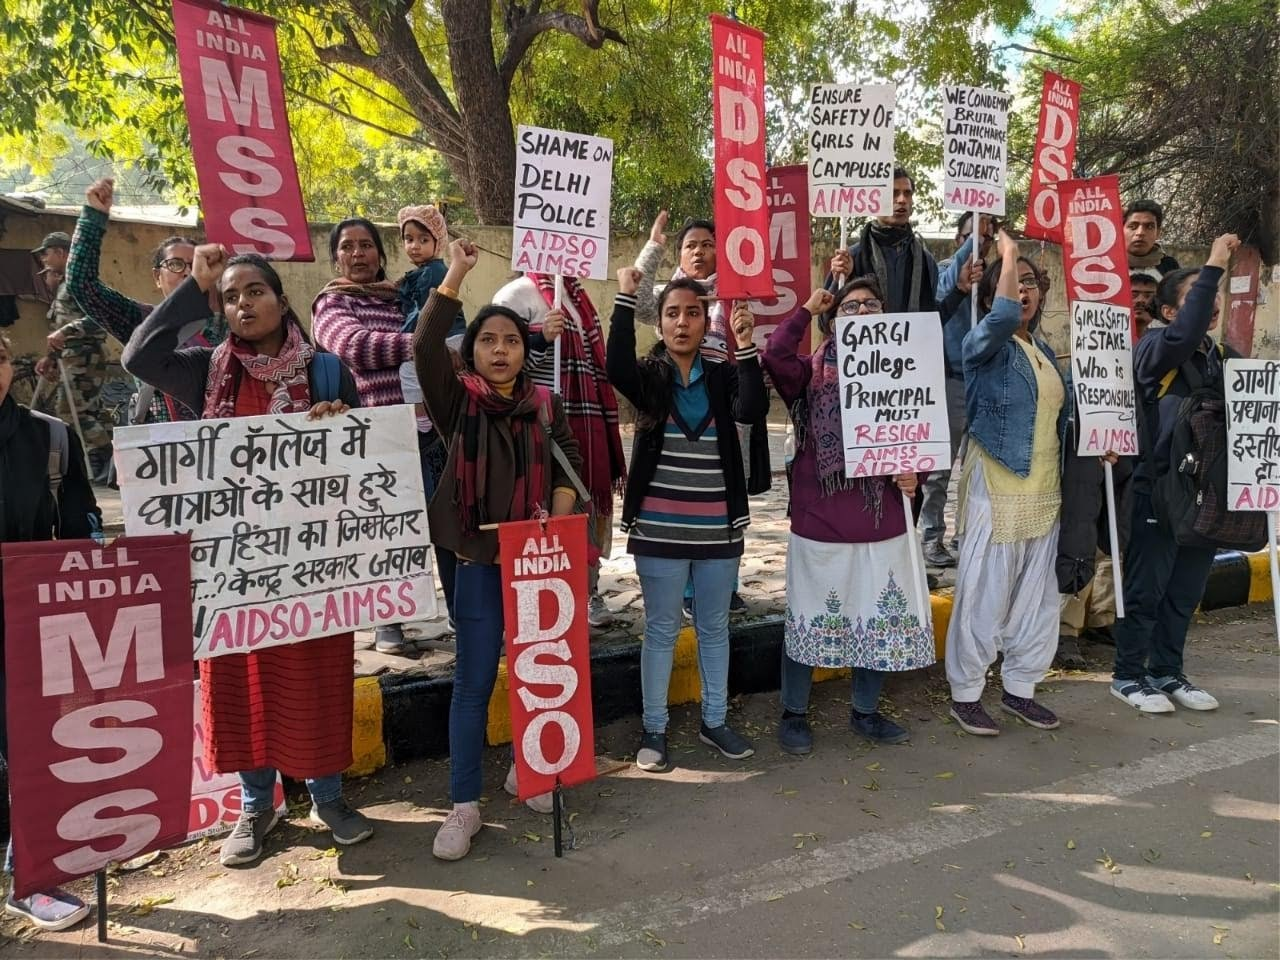 Rising sexual assaults on Indian college campuses